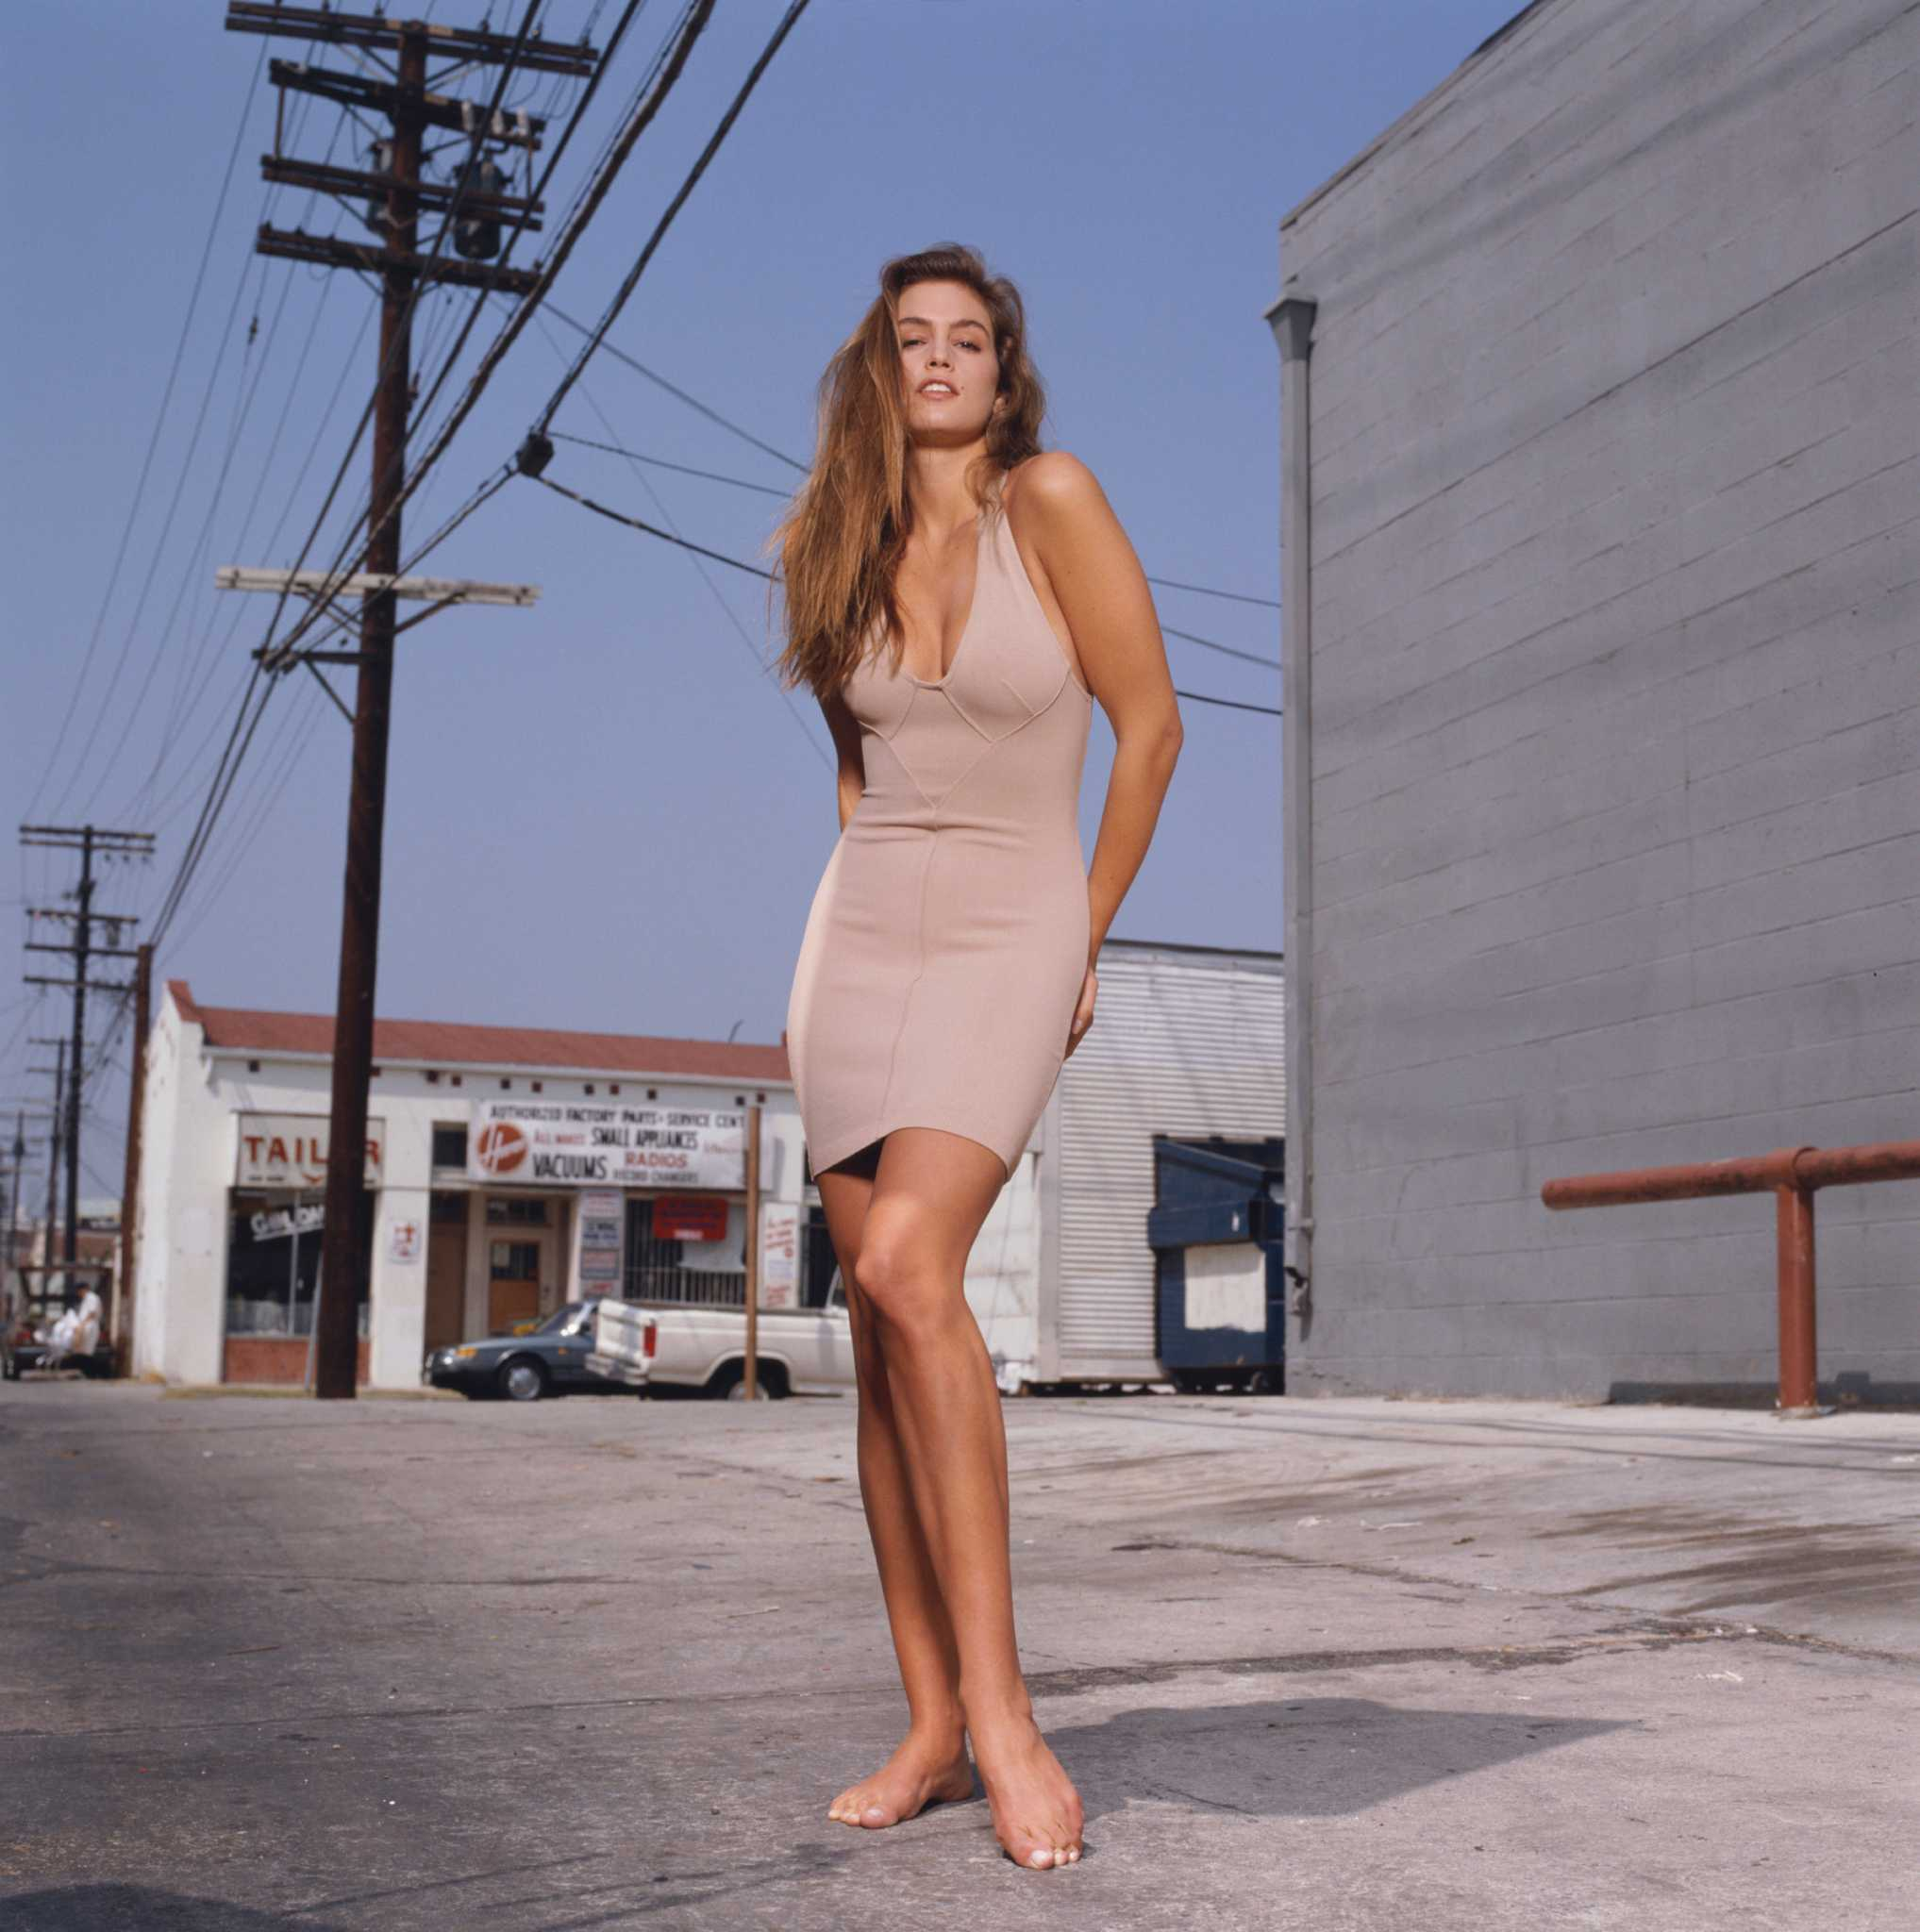 Supermodel Cindy Crawford turns 50 - Houston Chronicle